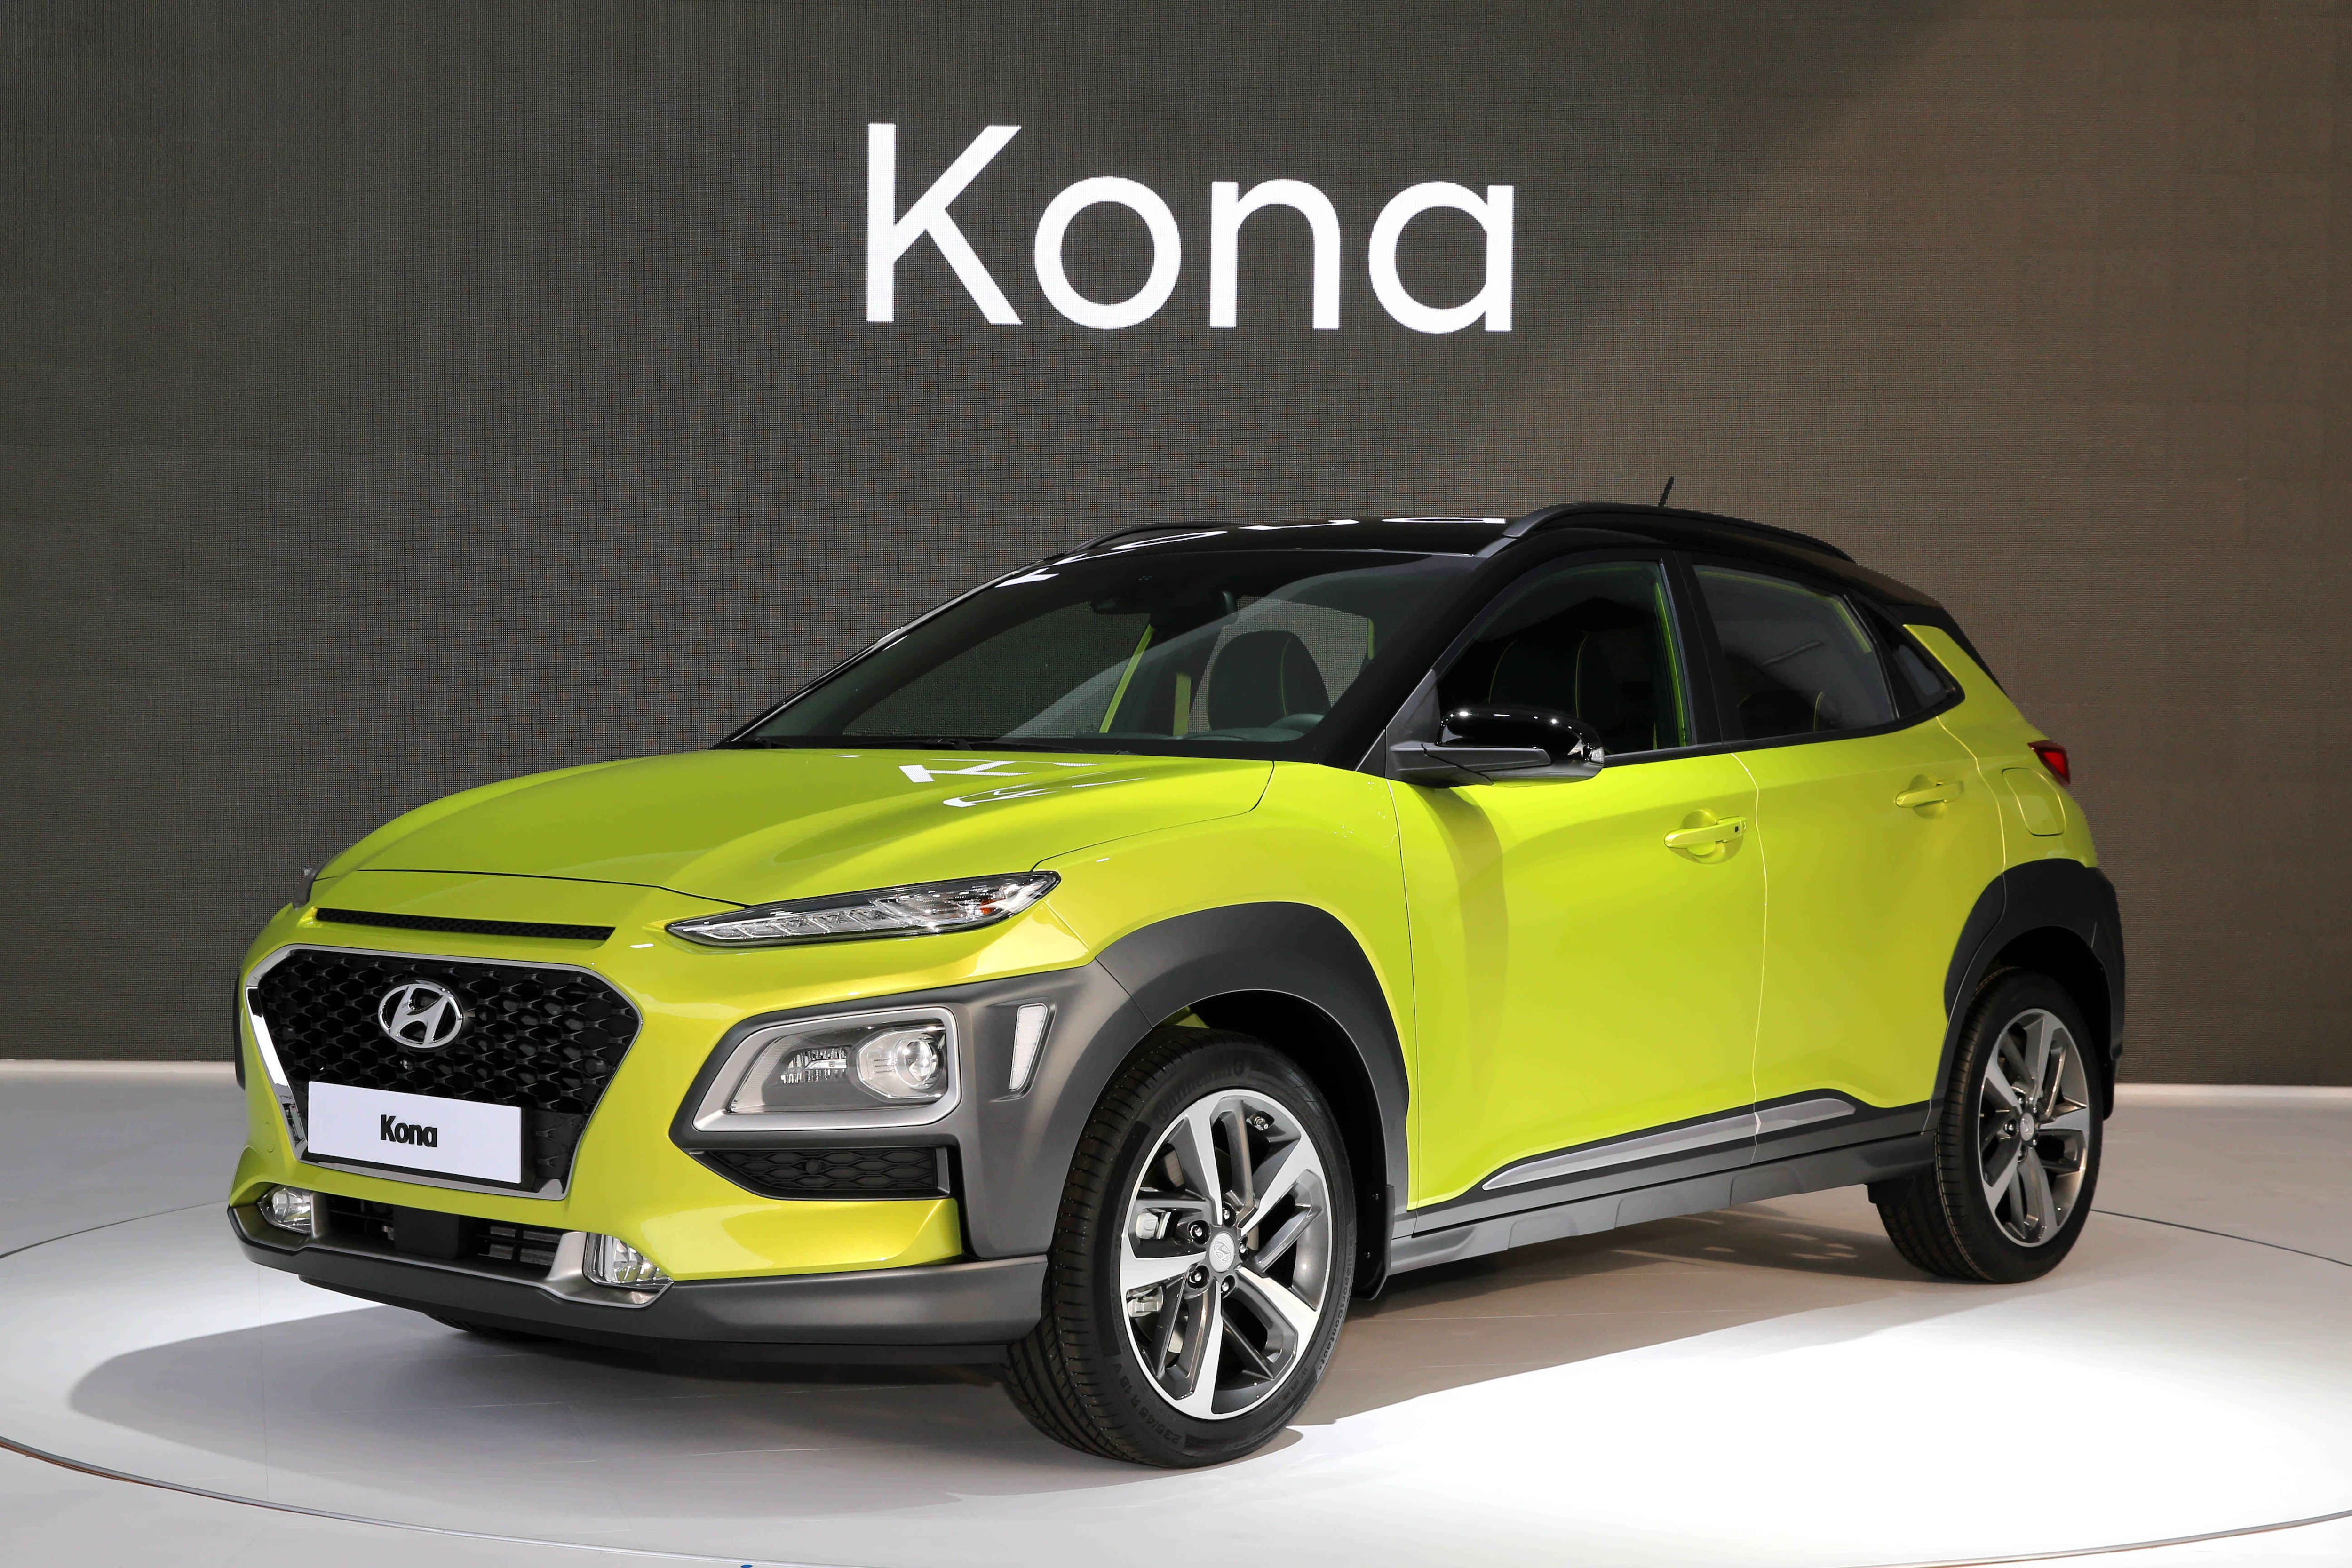 Kona : World Premiere of an Urban SUV for Active Lifestyles